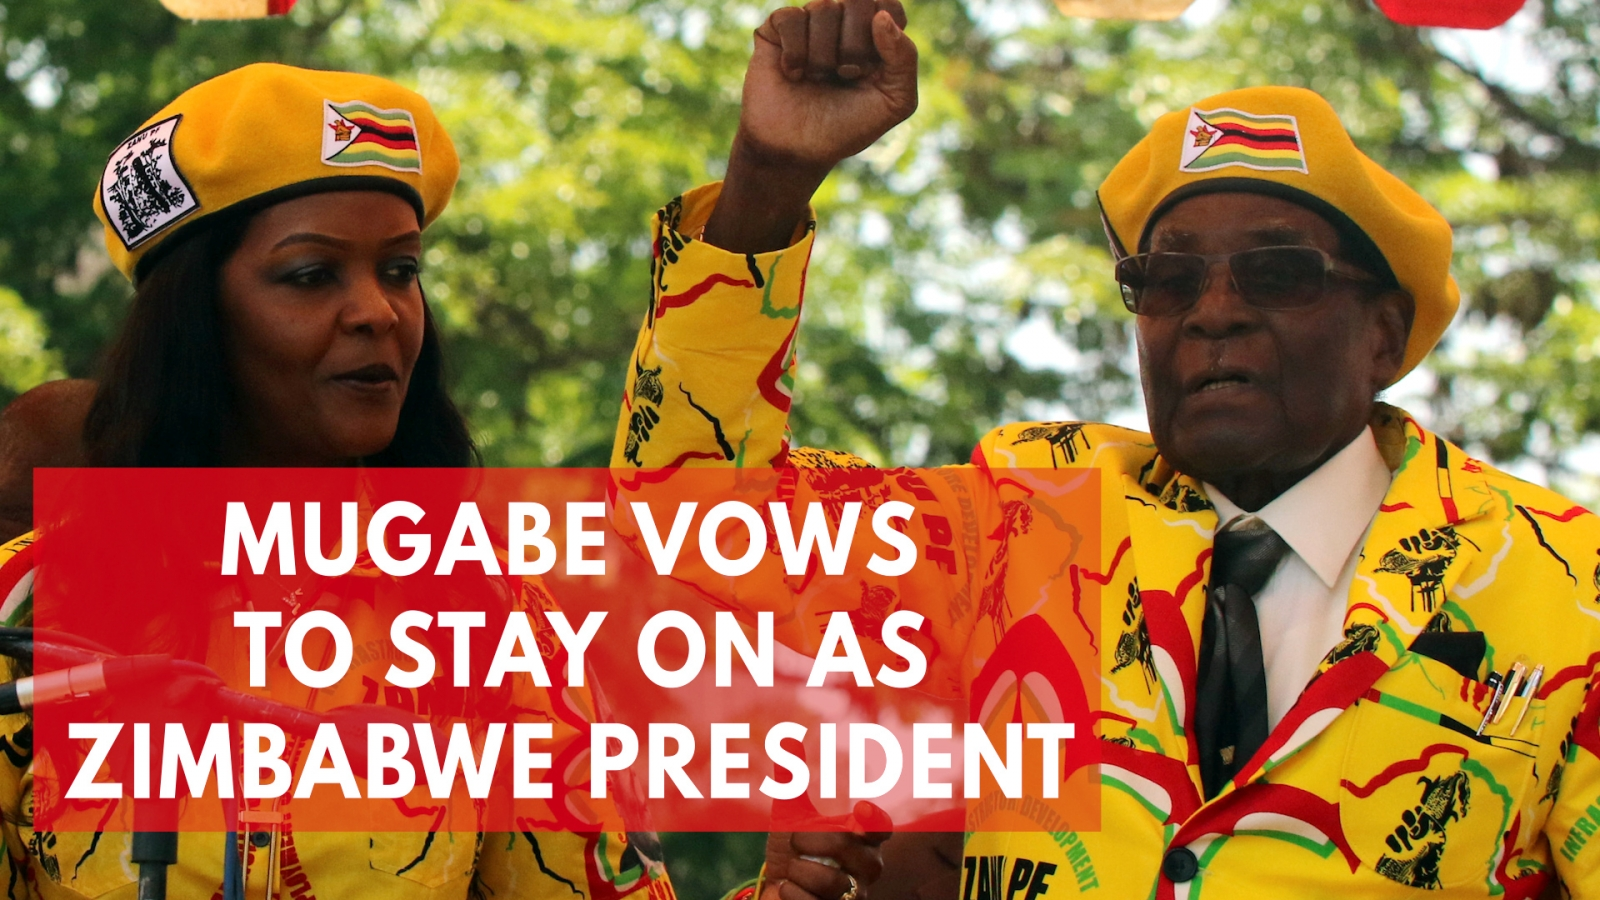 robert-mugabe-defies-expectations-and-vows-to-stay-on-as-zimbabwe-president